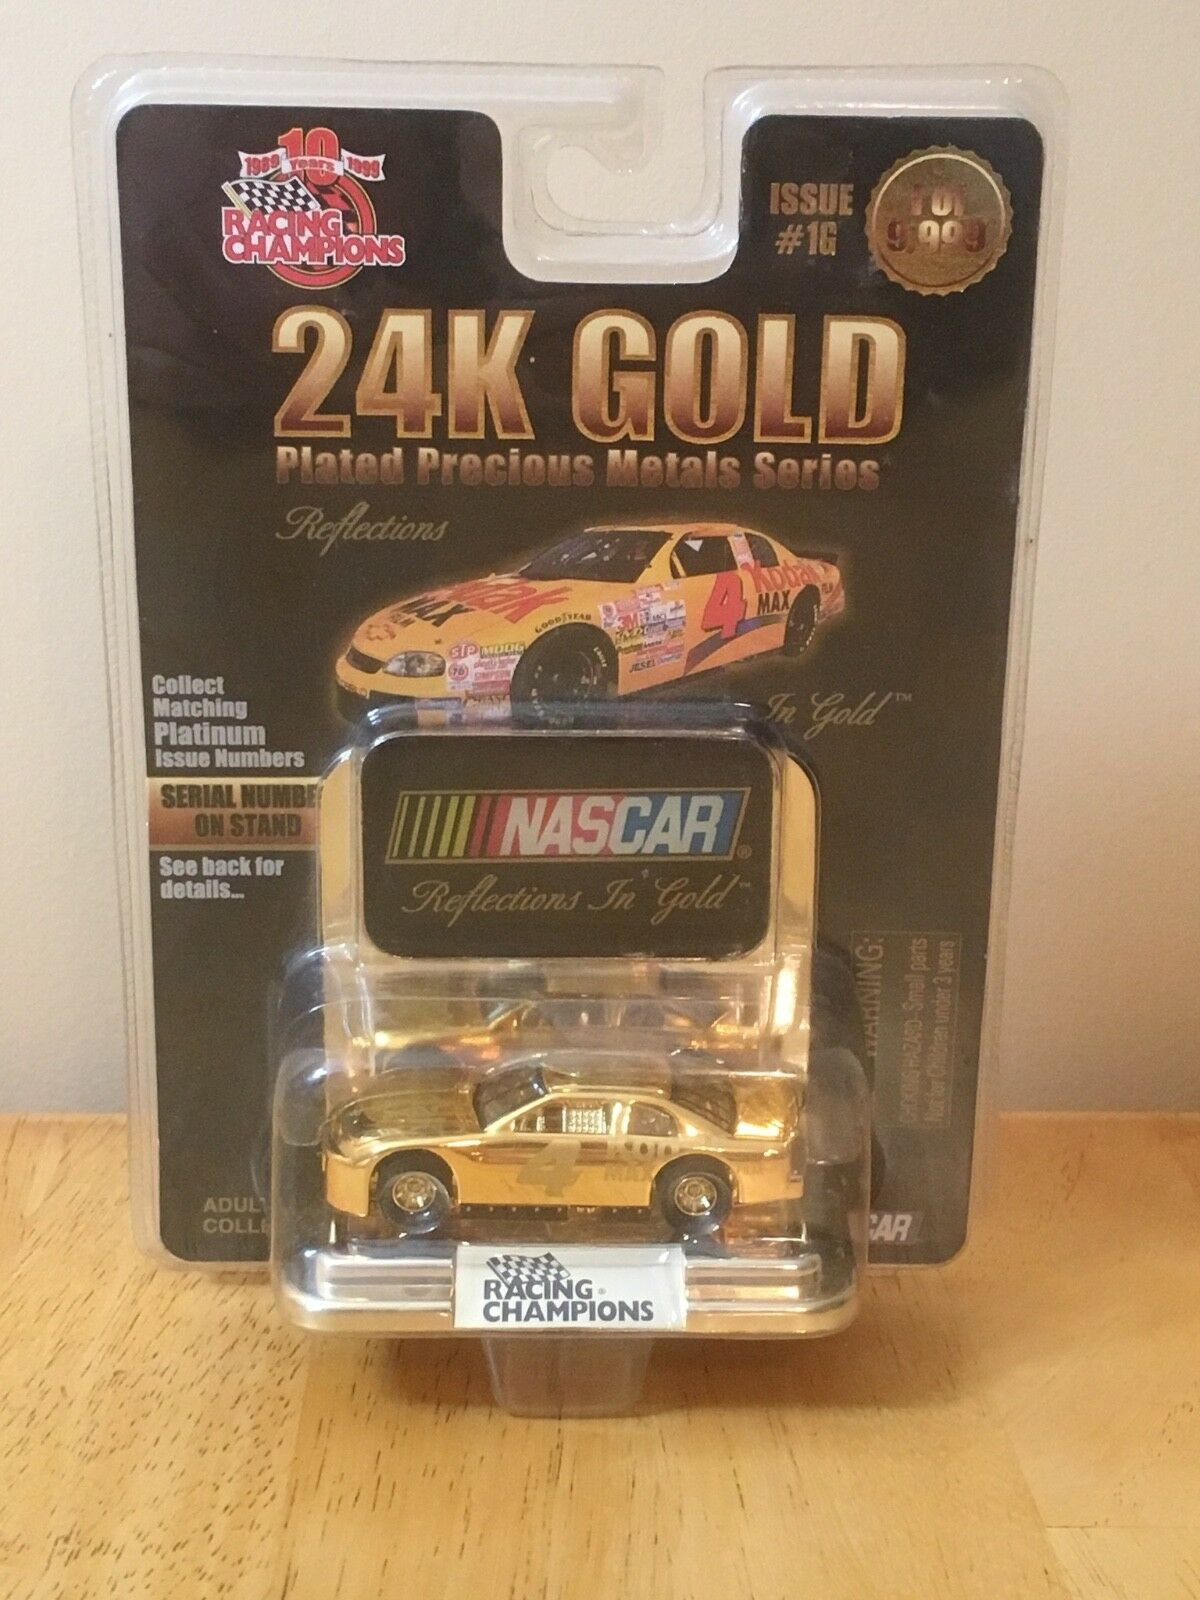 NASCAR Racing Champions 24K gold Plated Precious Metal Series Car New Sealed